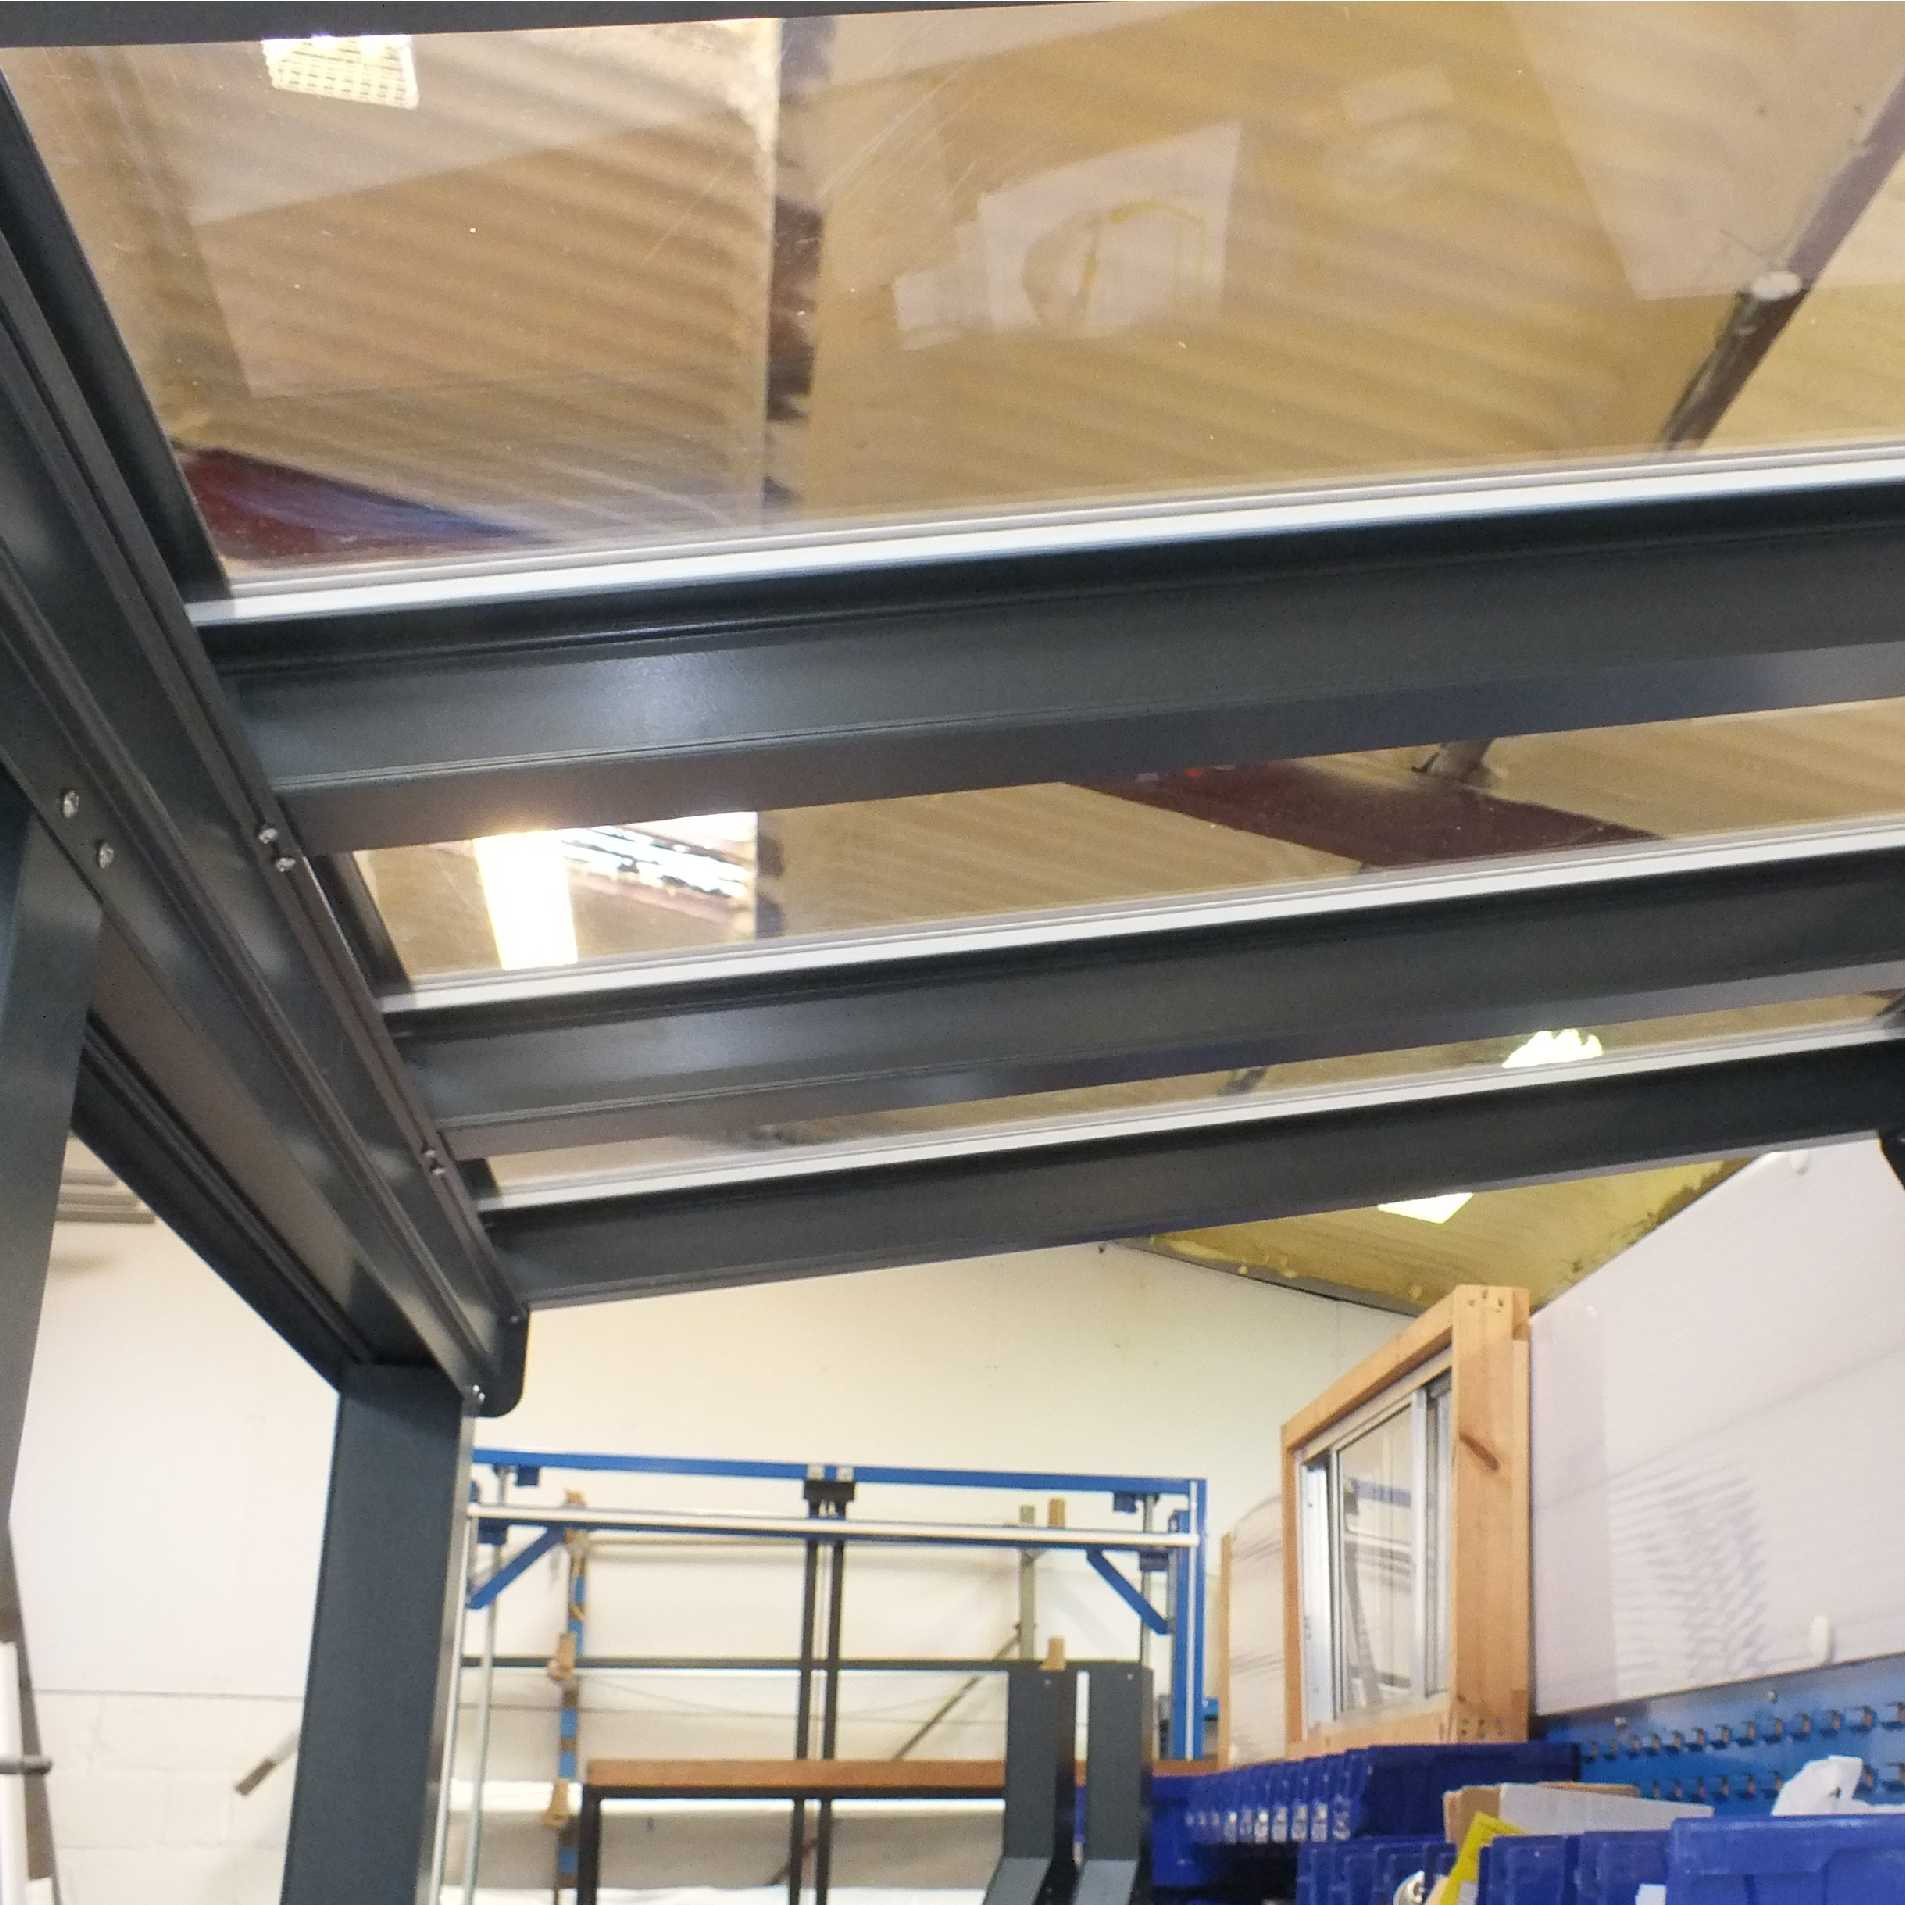 Great deals on Omega Smart Lean-To Canopy, Anthracite Grey, 6mm Glass Clear Plate Polycarbonate Glazing - 7.0m (W) x 2.5m (P), (4) Supporting Posts